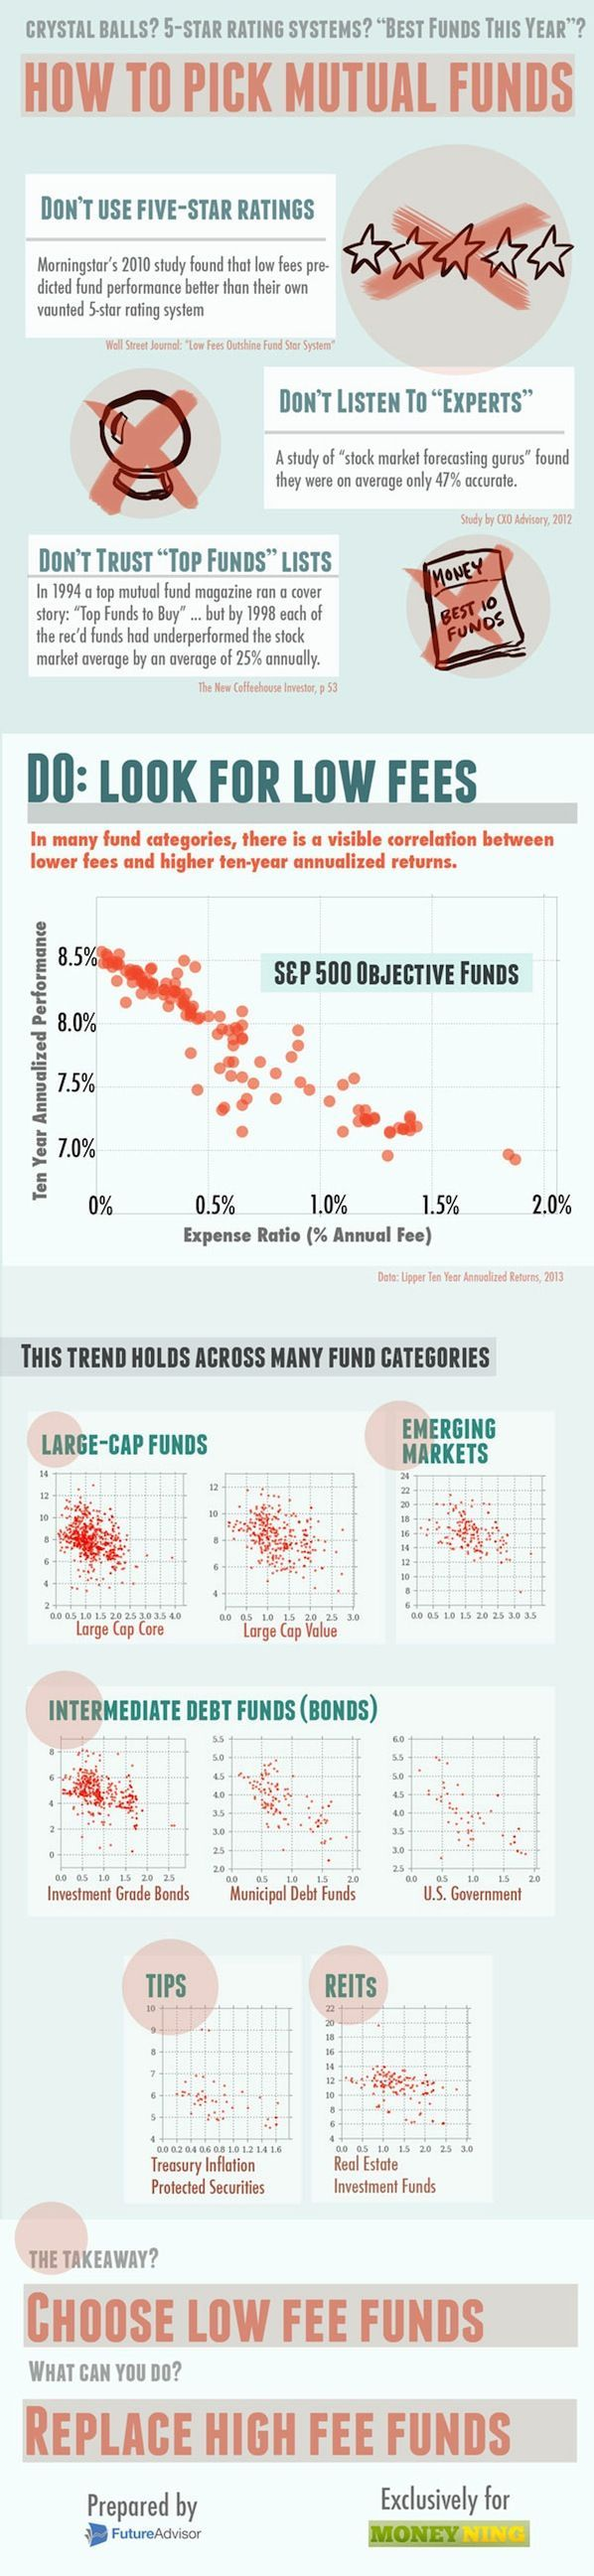 Do's and Don'ts of Picking Mutual Funds [Infographic]